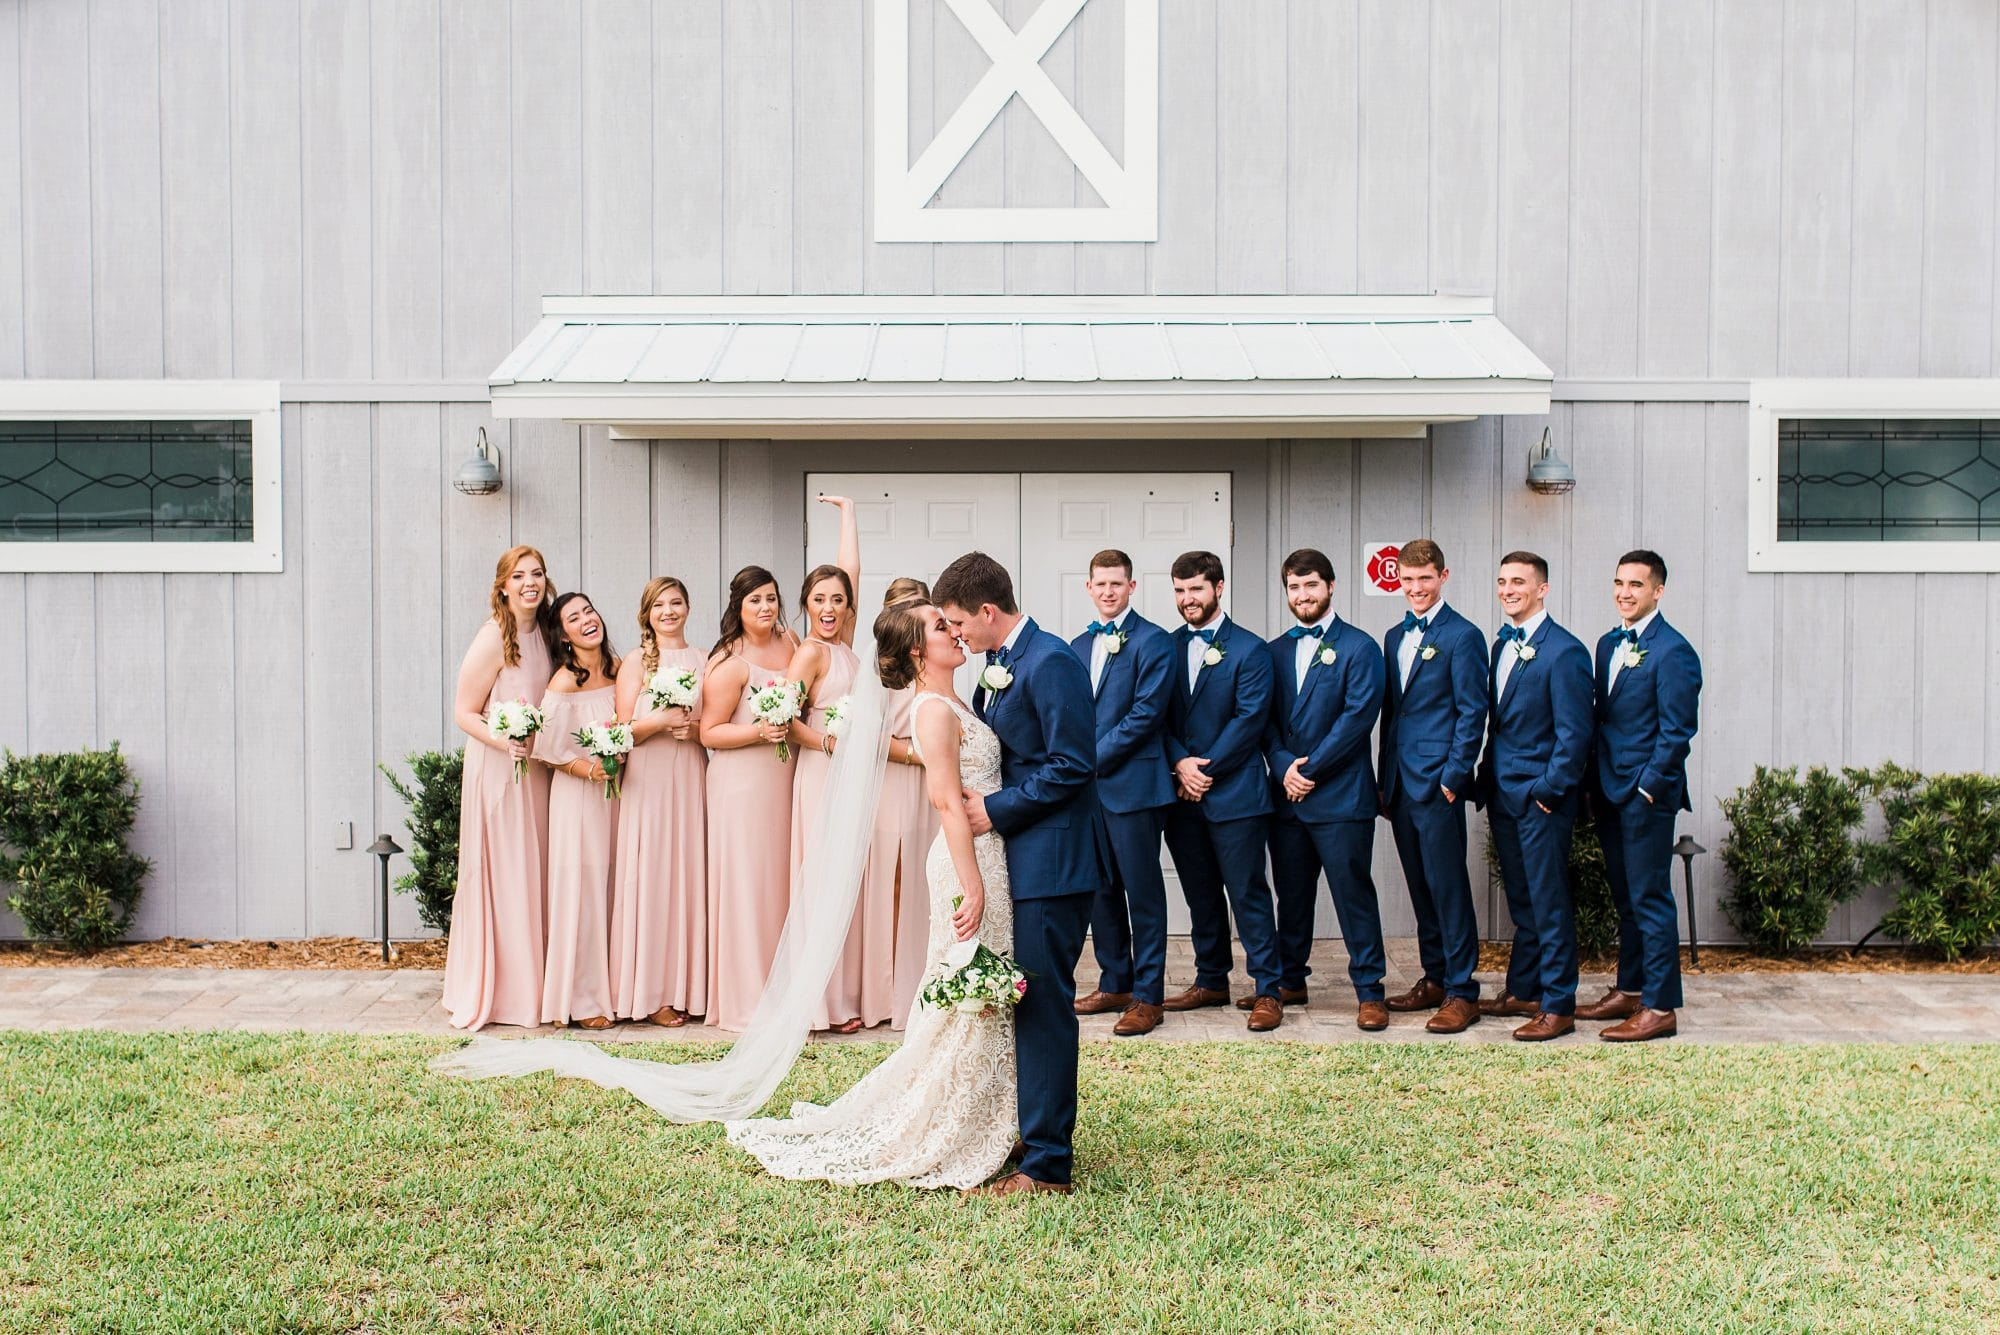 wedding party in front of barn while bride and groom kiss